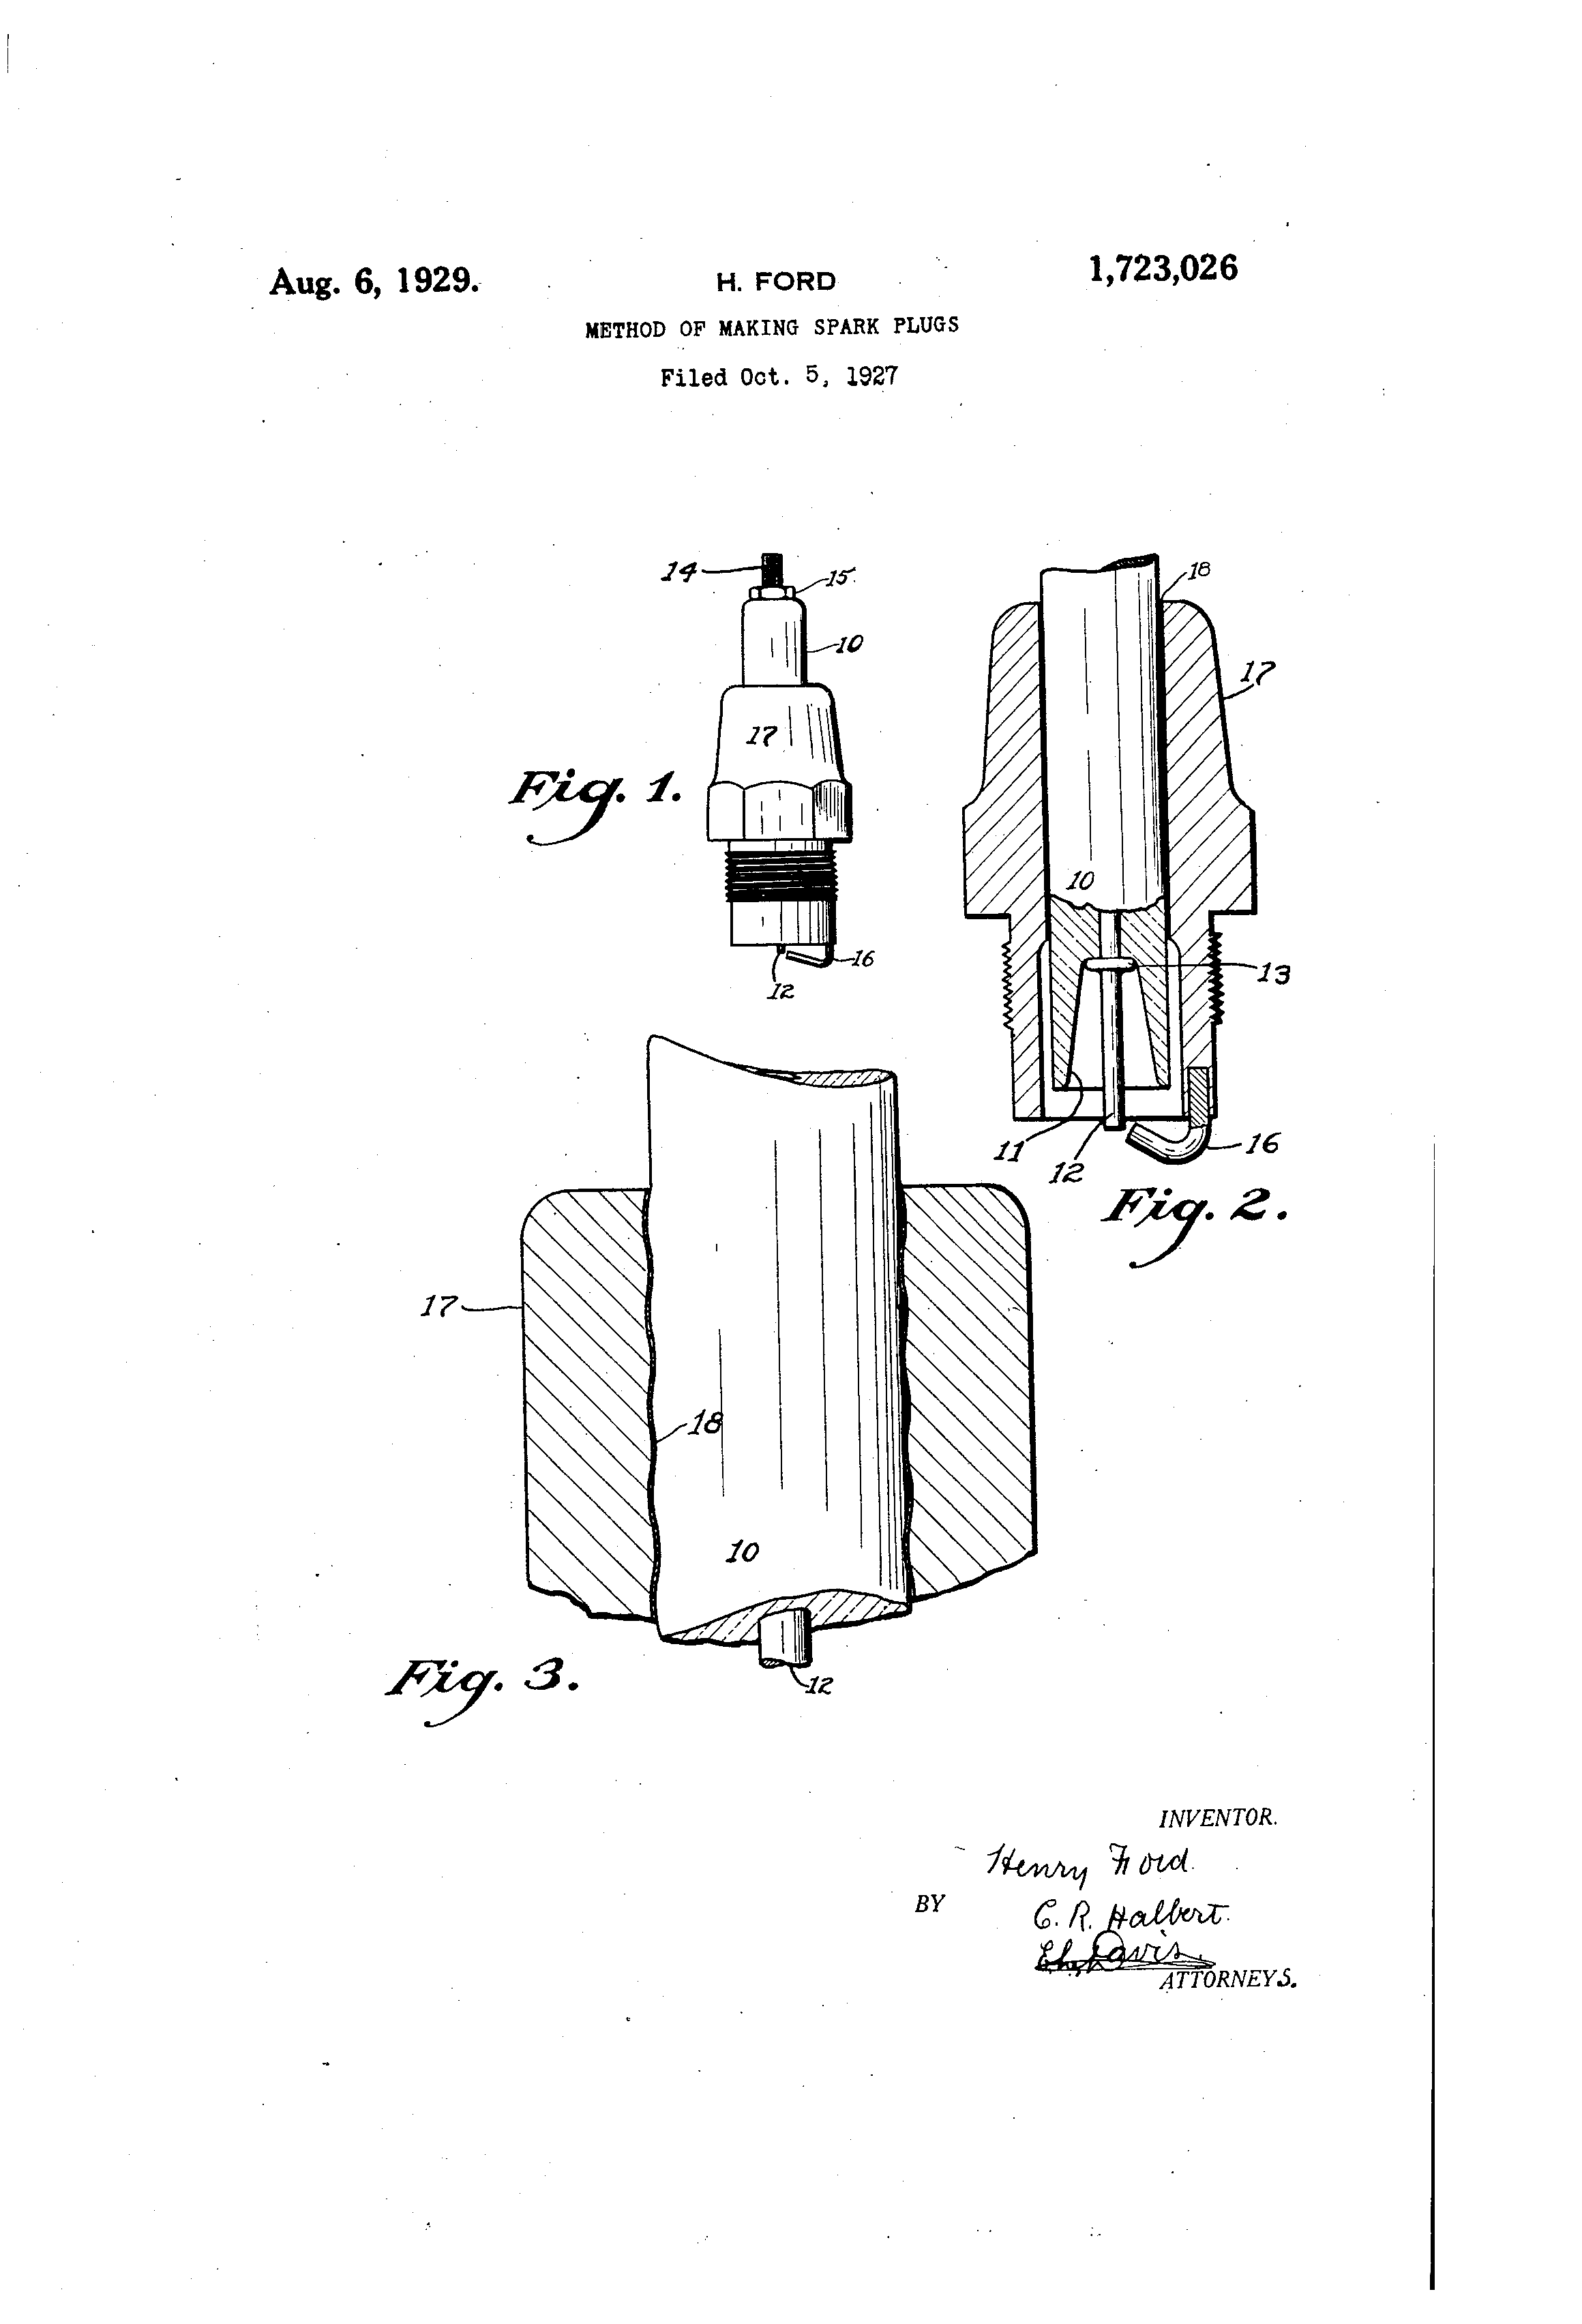 Method of making spark plugs